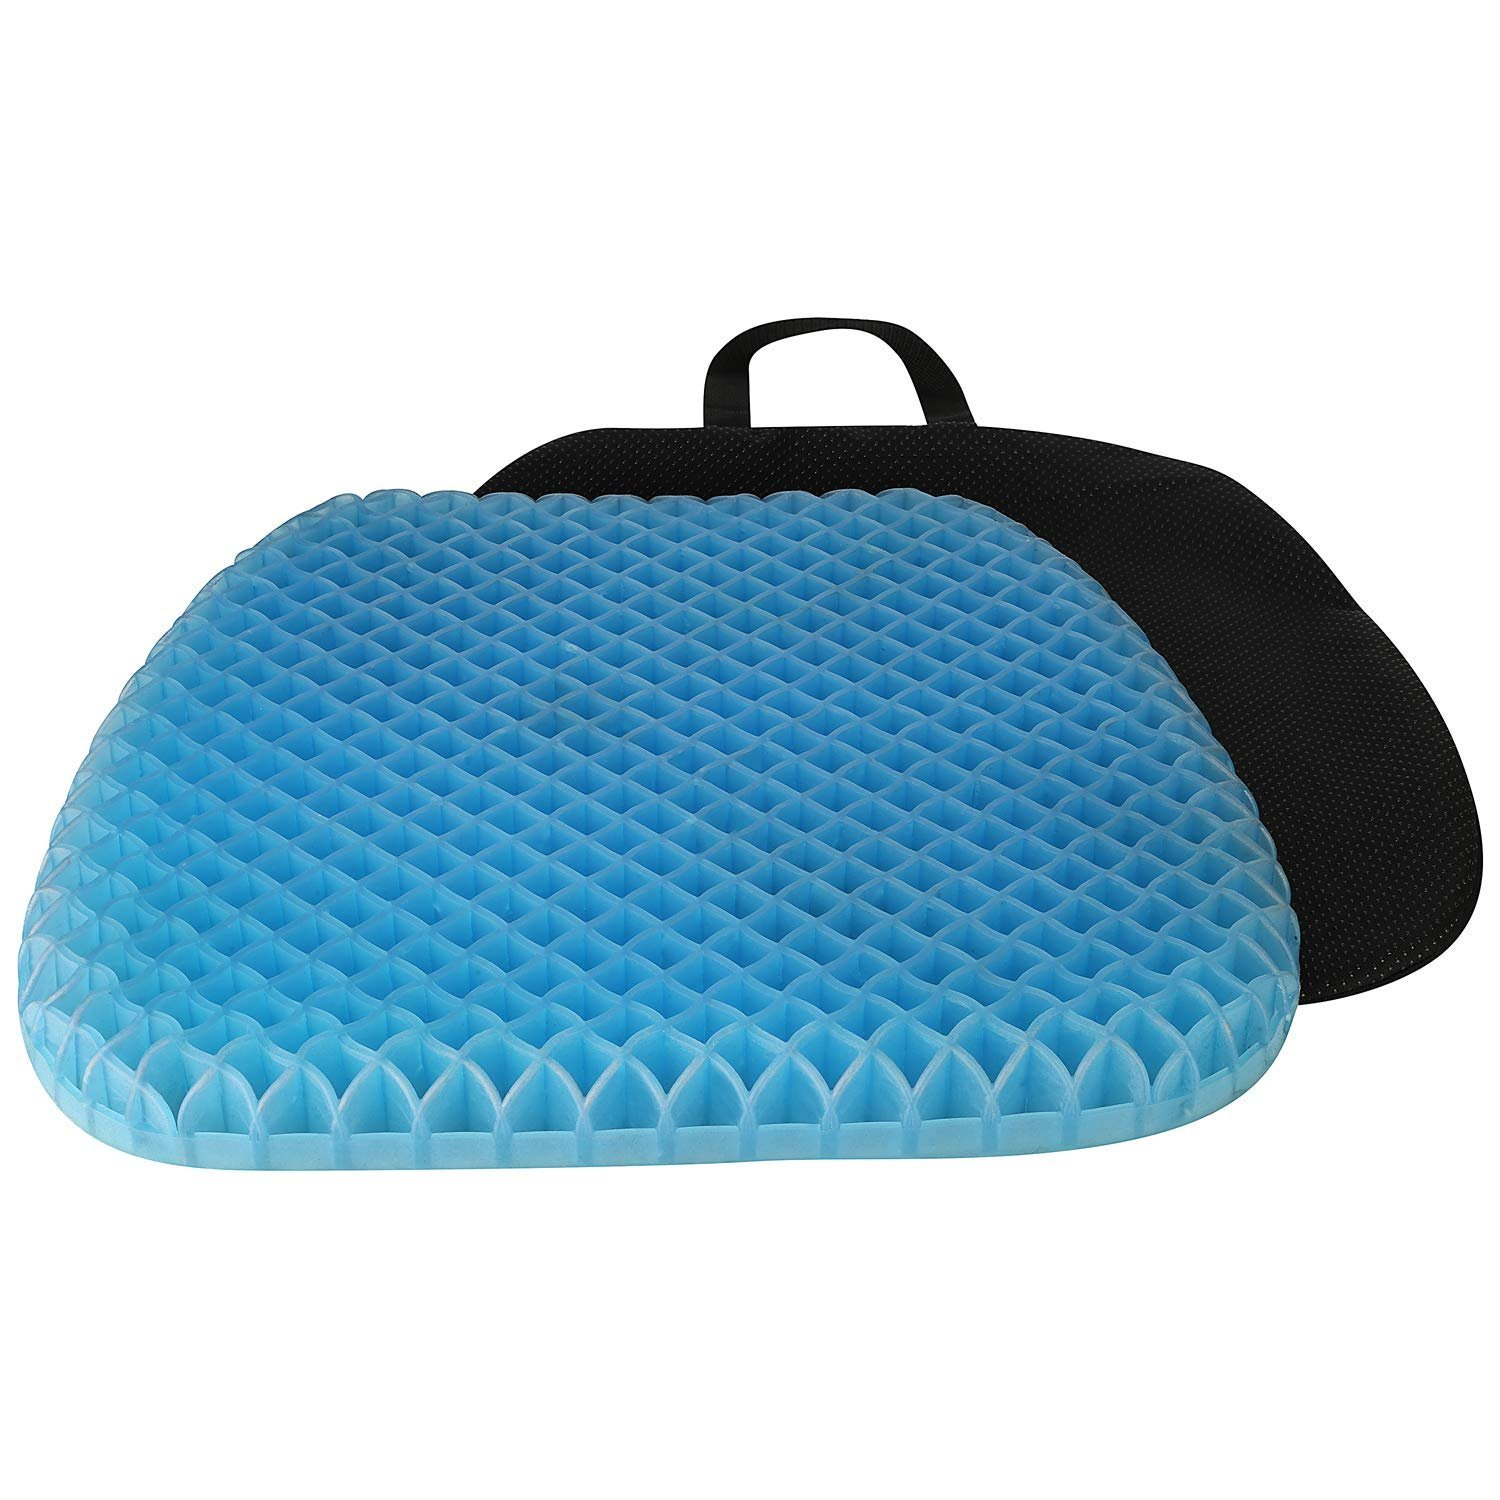 FOMI Thick Premium All Gel Orthopedic Seat Cushion | Large Comfortable Pad for Car, Office Chair, Wheelchair, or Home | Pressure Sore Relief, Prevents Sweaty Bottom | Durable, Portable